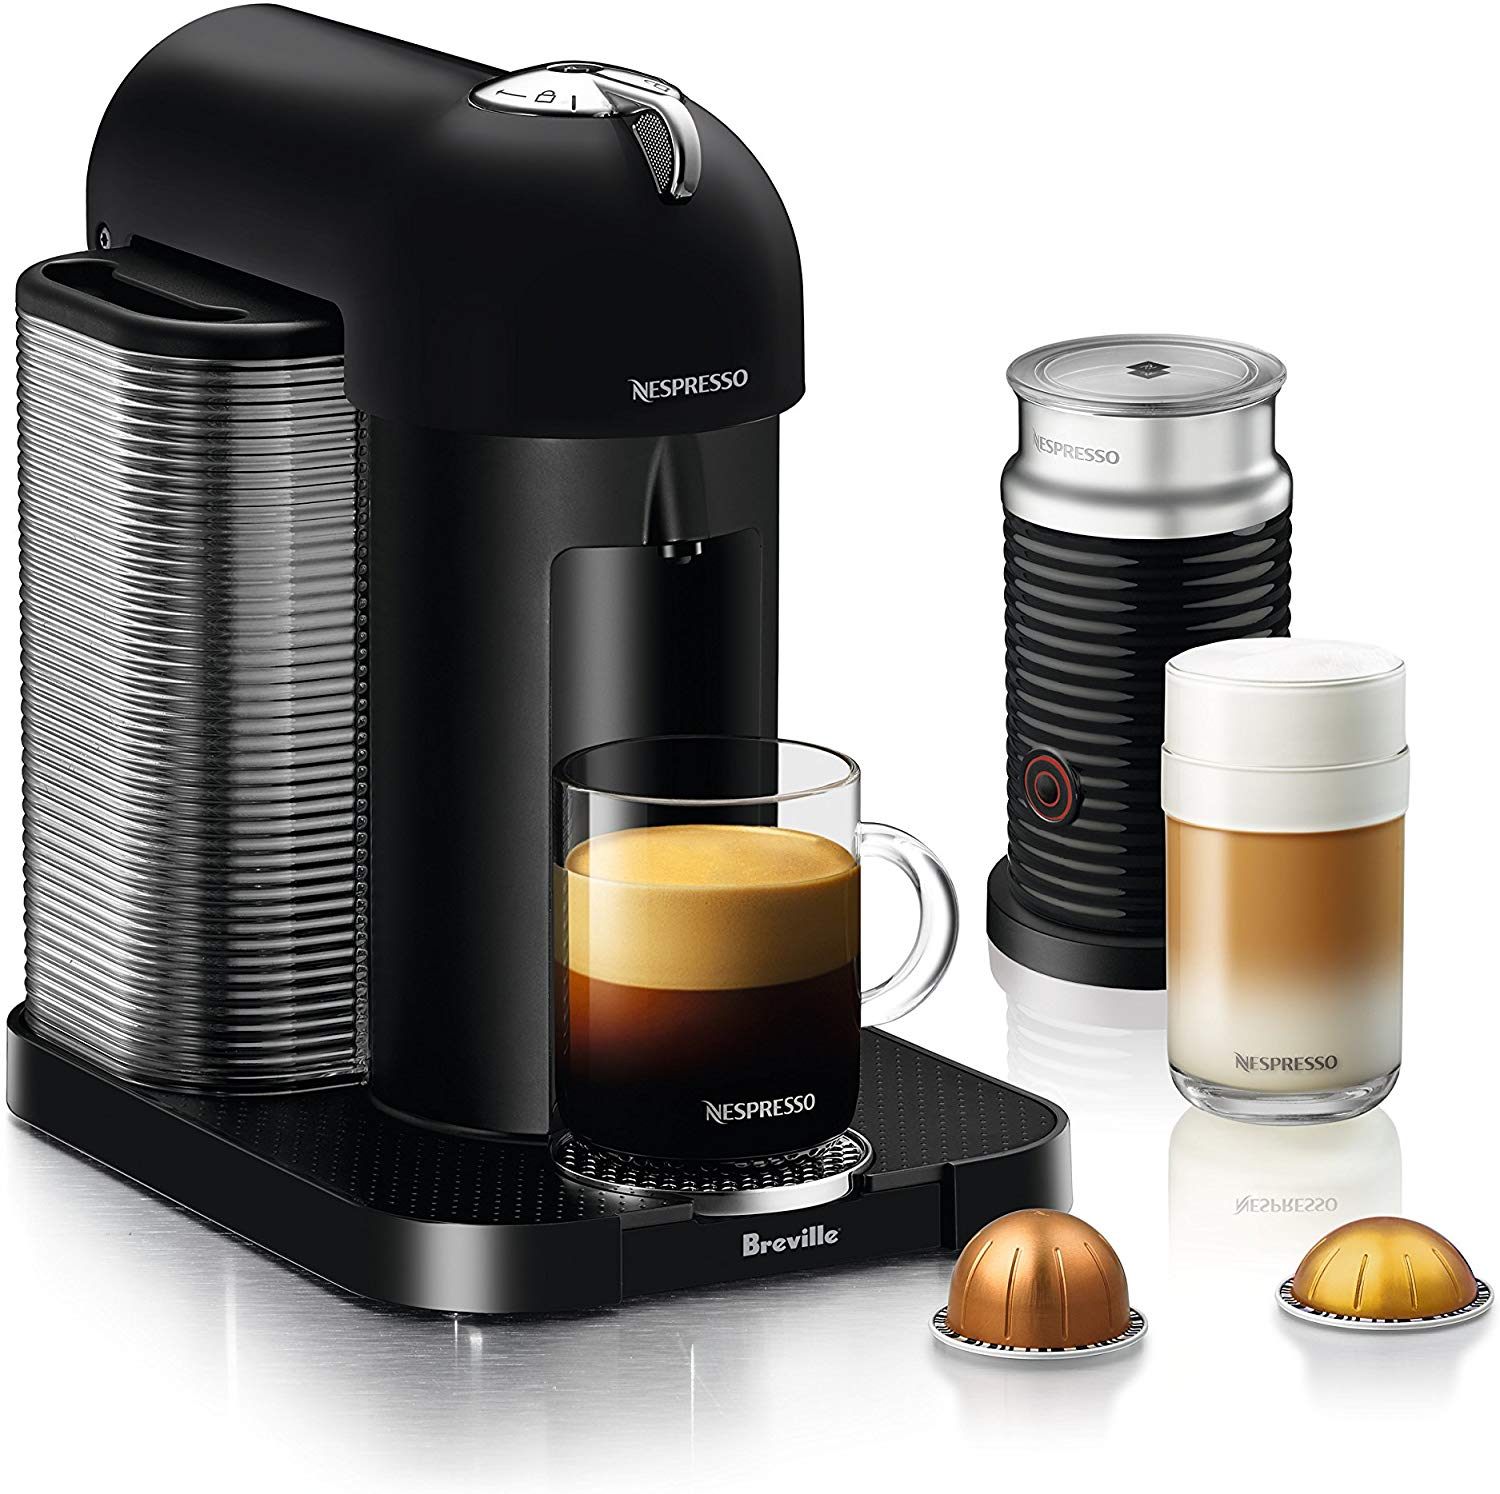 Nespresso by Breville BNV250BKM1BUC1 Vertuo Coffee and Espresso Machine, 19.25 x 11 x 15.25 in, Matte Black